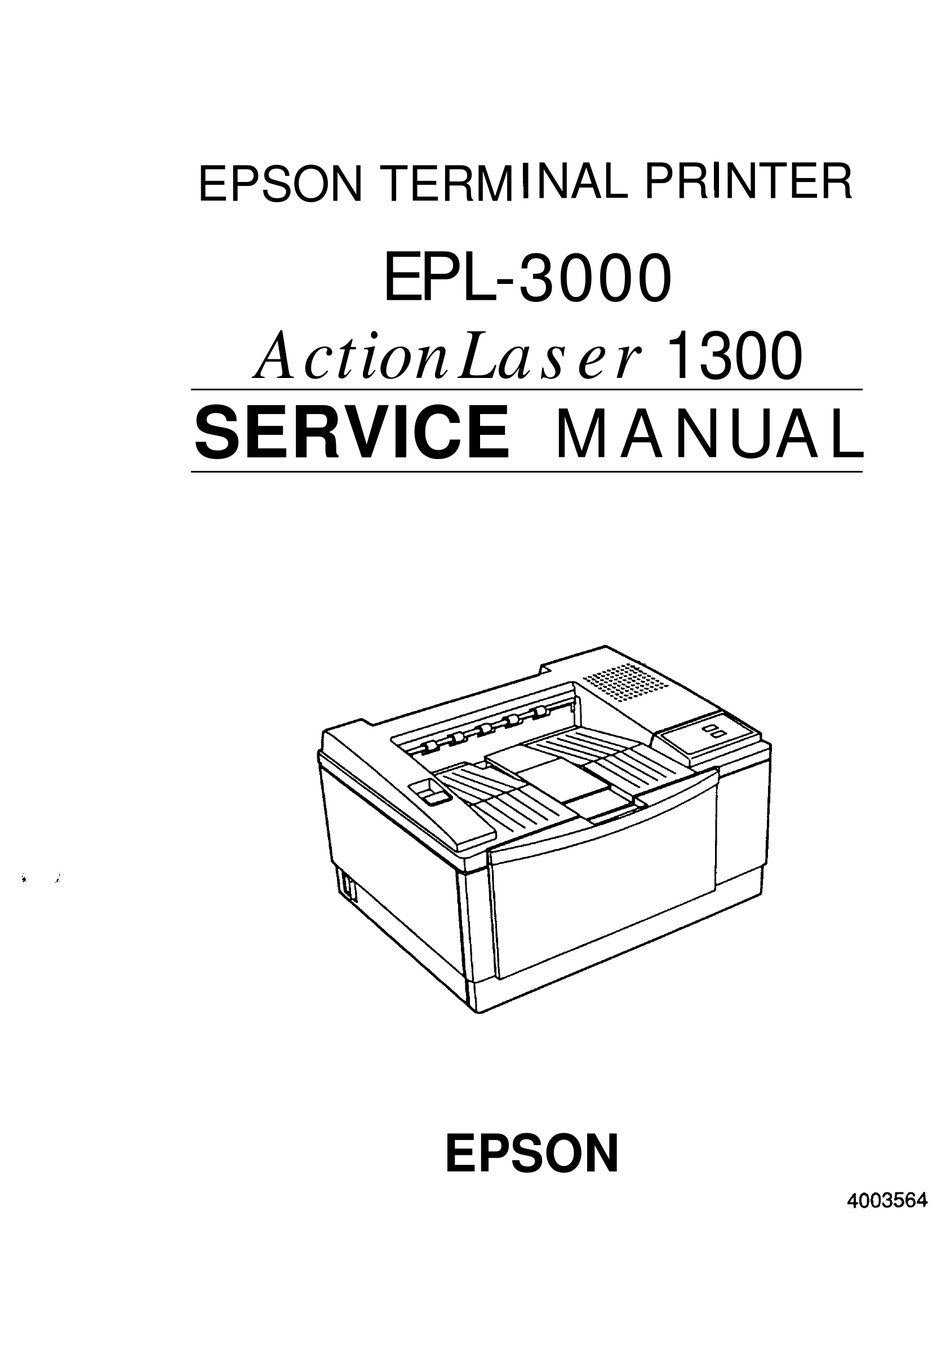 EPSON ACTIONLASER 1300 EPL-3000 SERVICE MANUAL Pdf